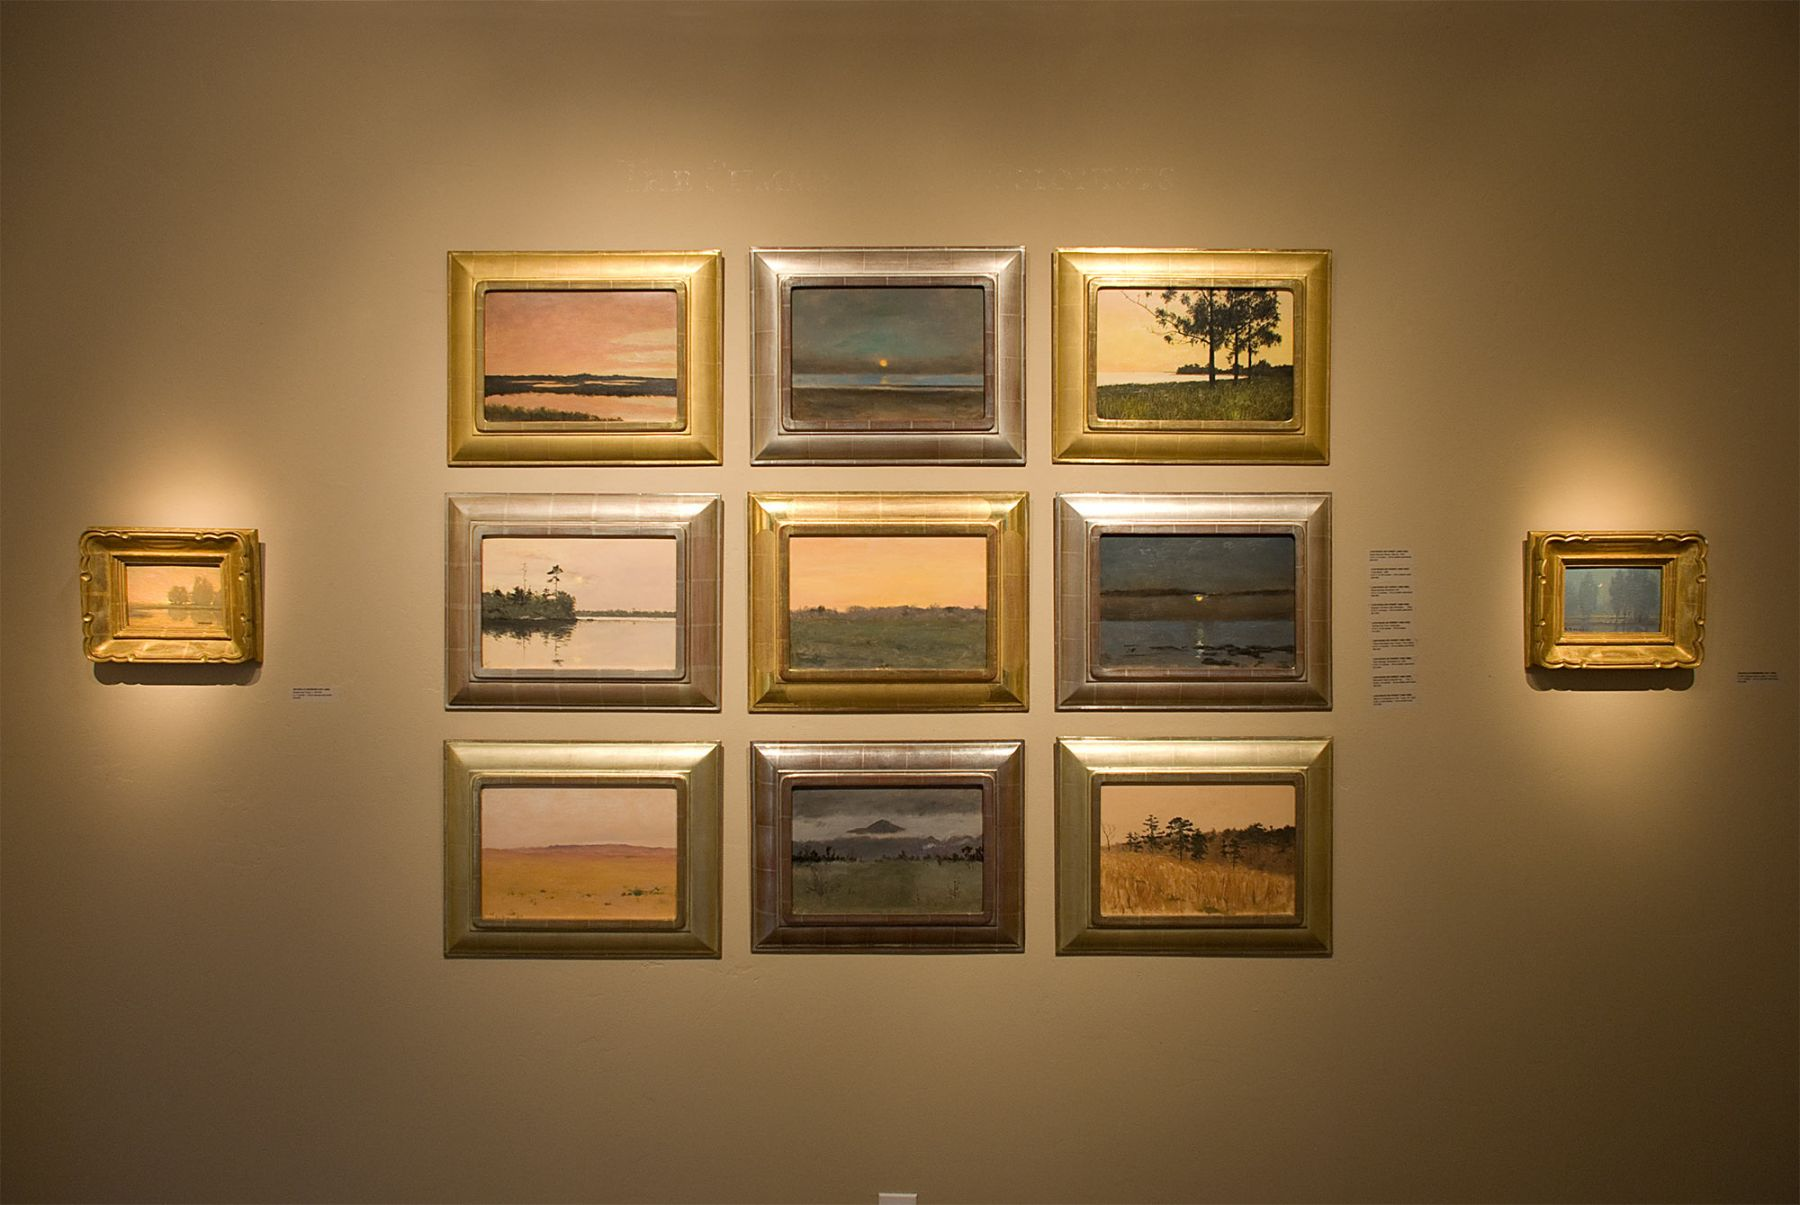 TONALISM THEN installation, Granville Redmond, Lockwood de Forest